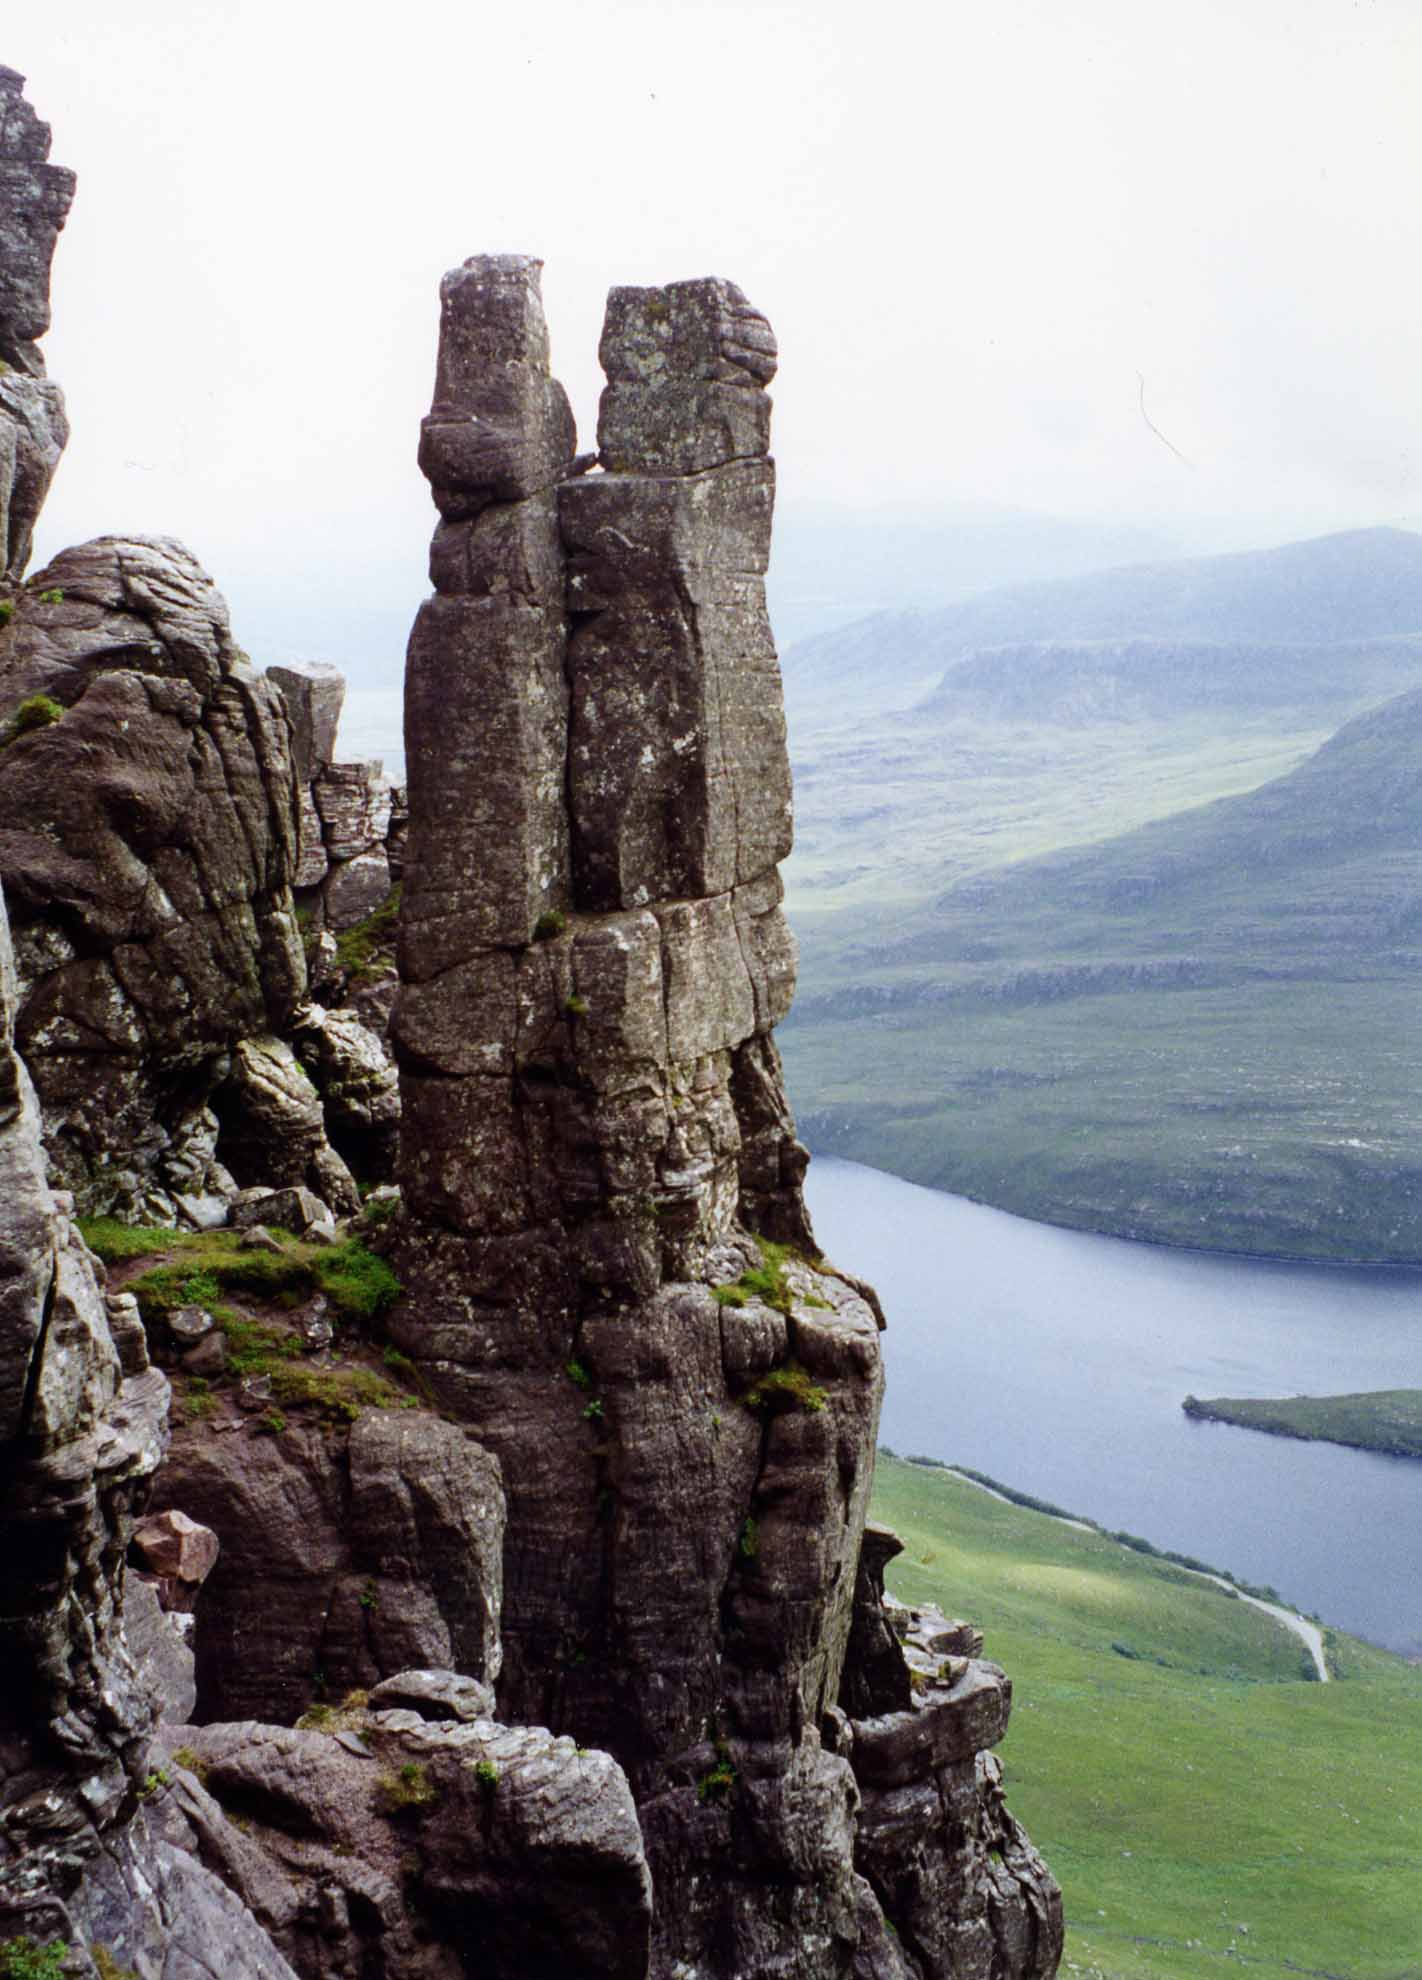 https://i0.wp.com/upload.wikimedia.org/wikipedia/commons/b/b4/Lobster_Claw_on_Stac_Pollaidh.jpg